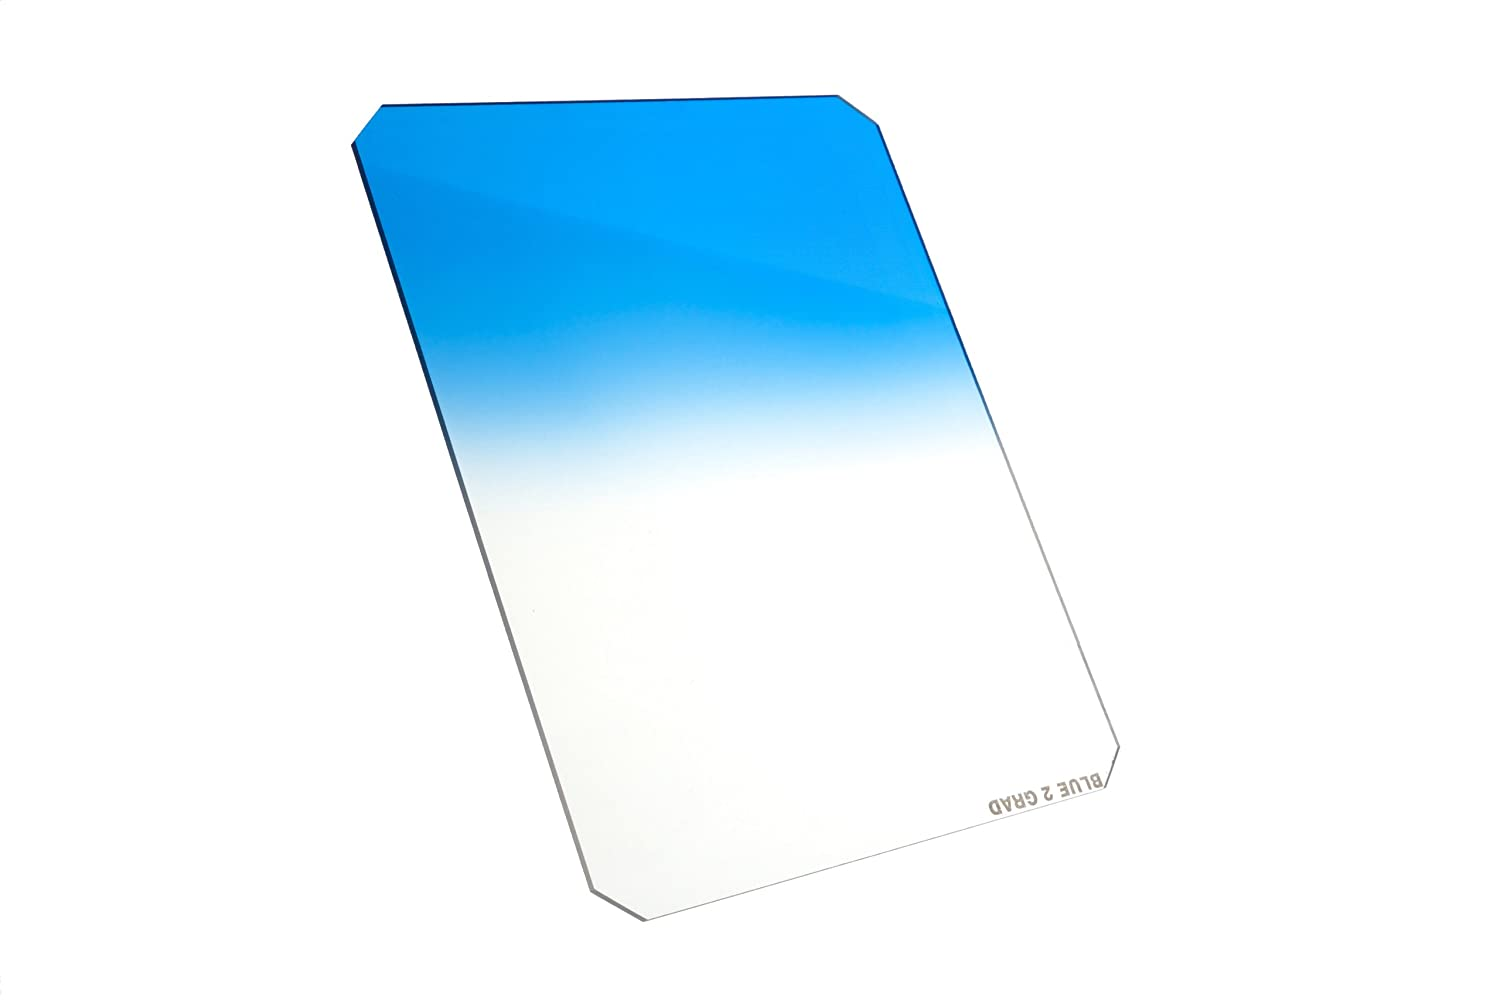 Resin Solid Color Cool Blue 2 2.67x3.35 Formatt-Hitech 67x85mm